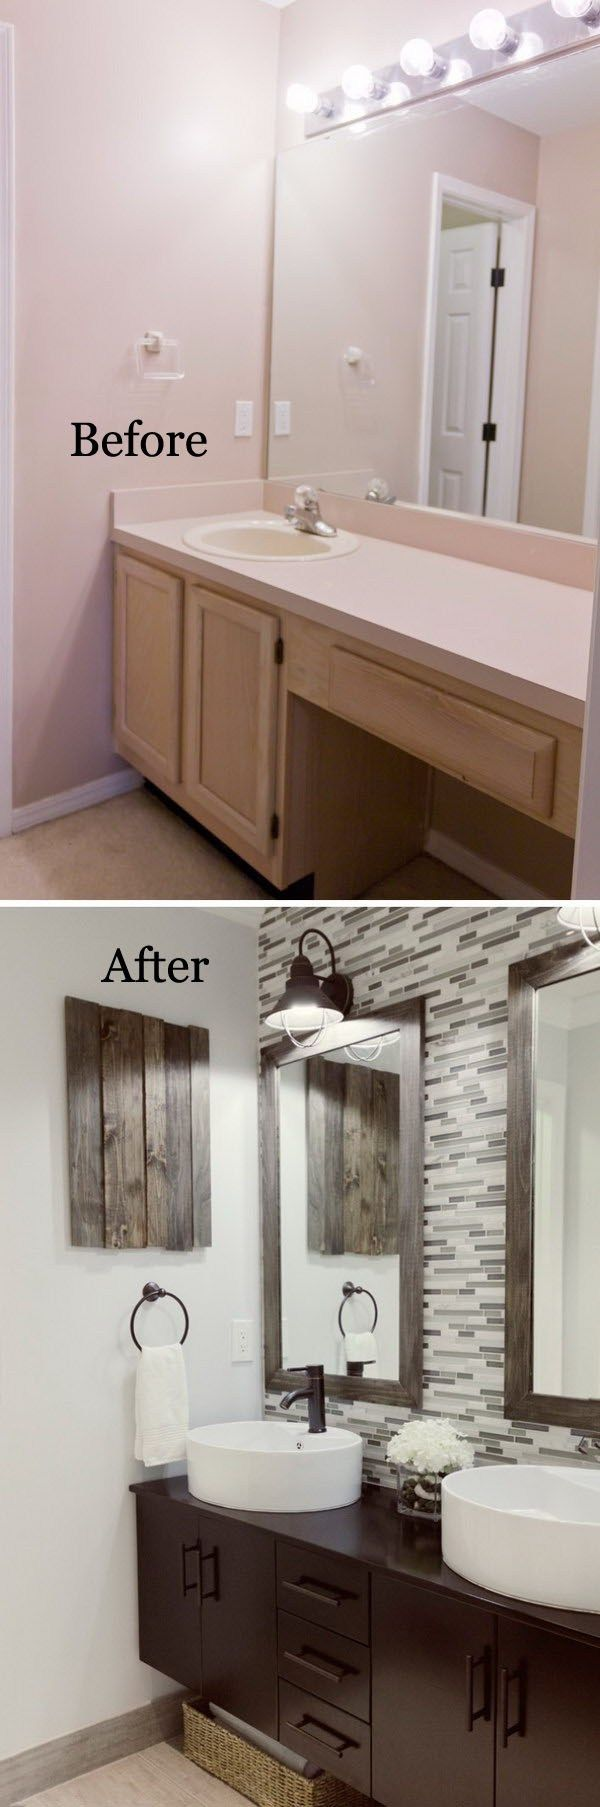 37 Small Bathroom Makeovers Before And After Pics Bath Bathroom